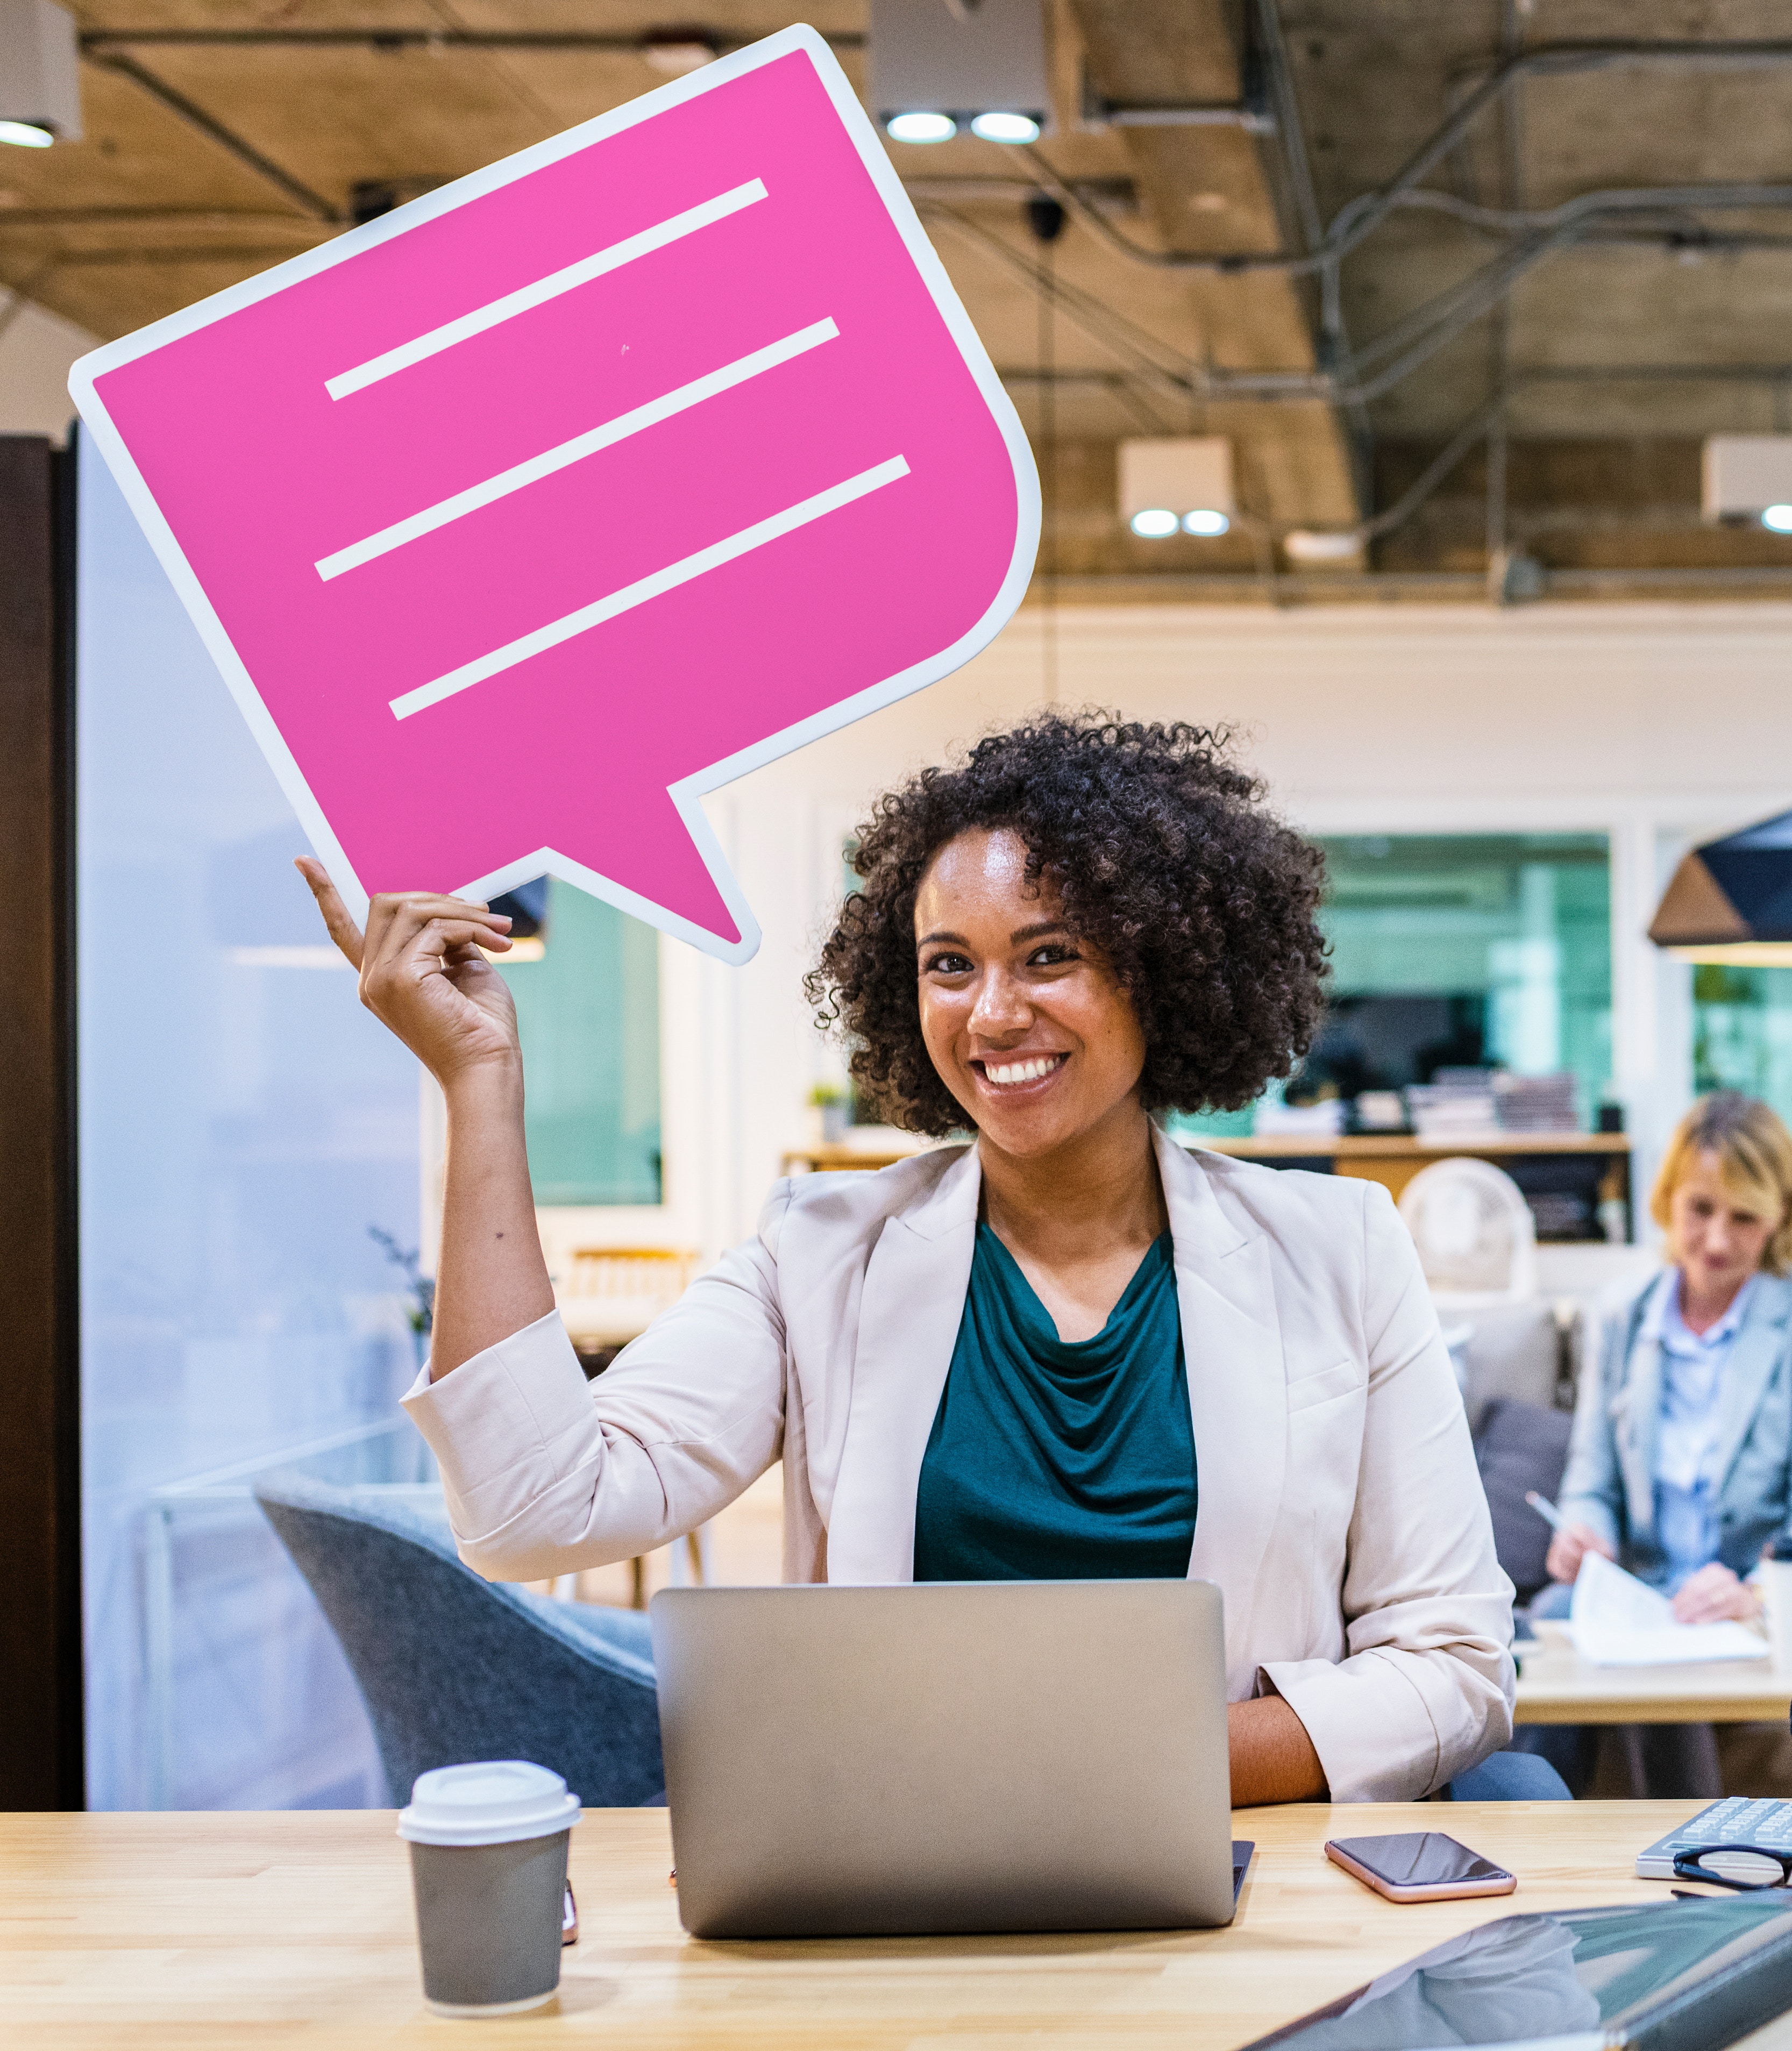 A woman in business casual sits at a desk with an open laptop and holds up a pink cardboard message bubble in her right hand while smiling